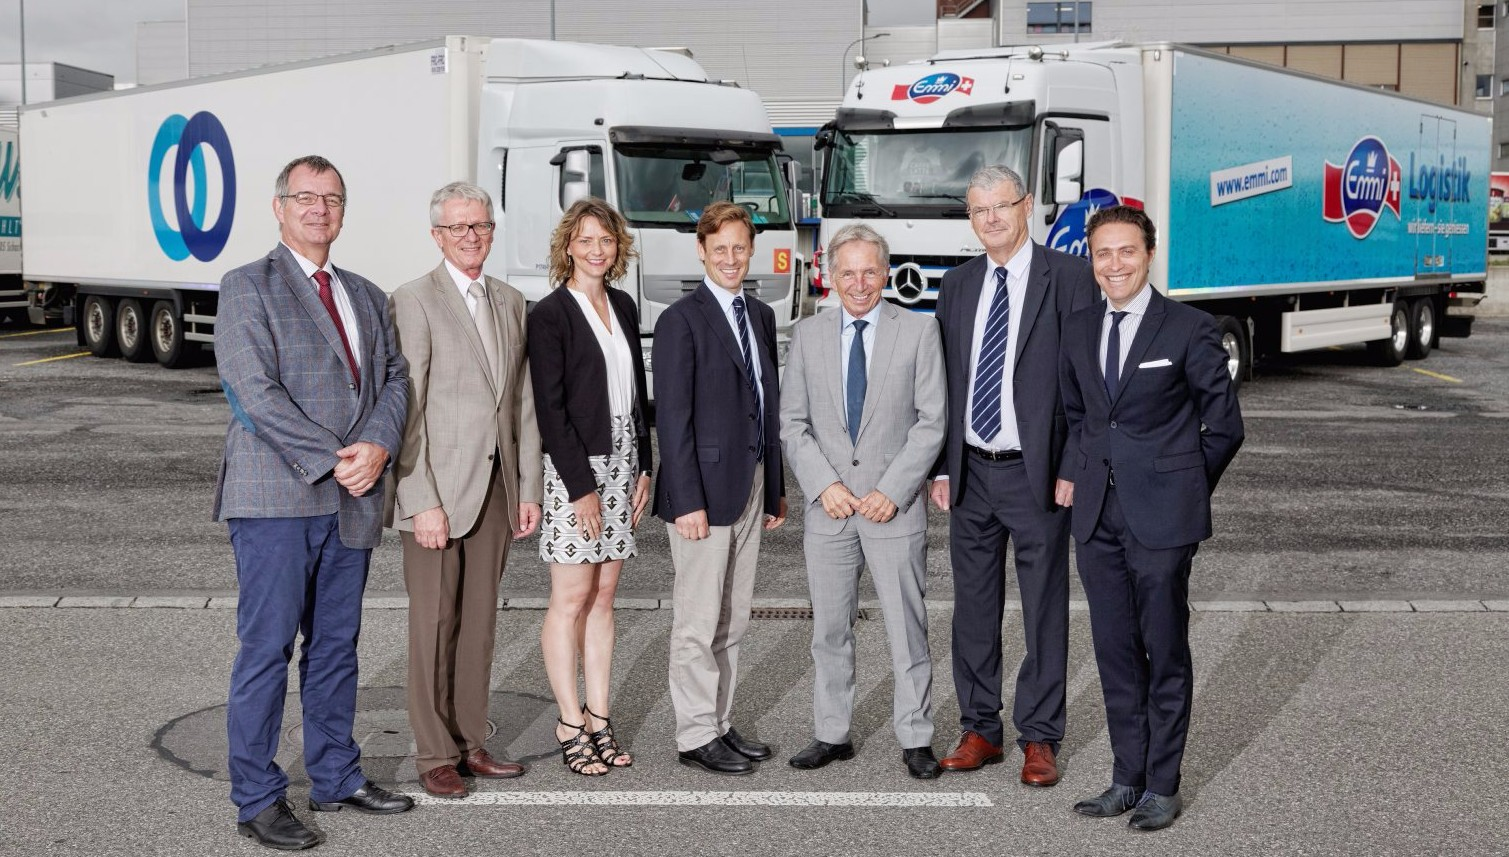 European cold logistics specialist Stef and leading Swiss milk processor Emmi have agreed to create a joint logistics and distribution network dedicated to refrigerated food products (+2°C / +4°C).